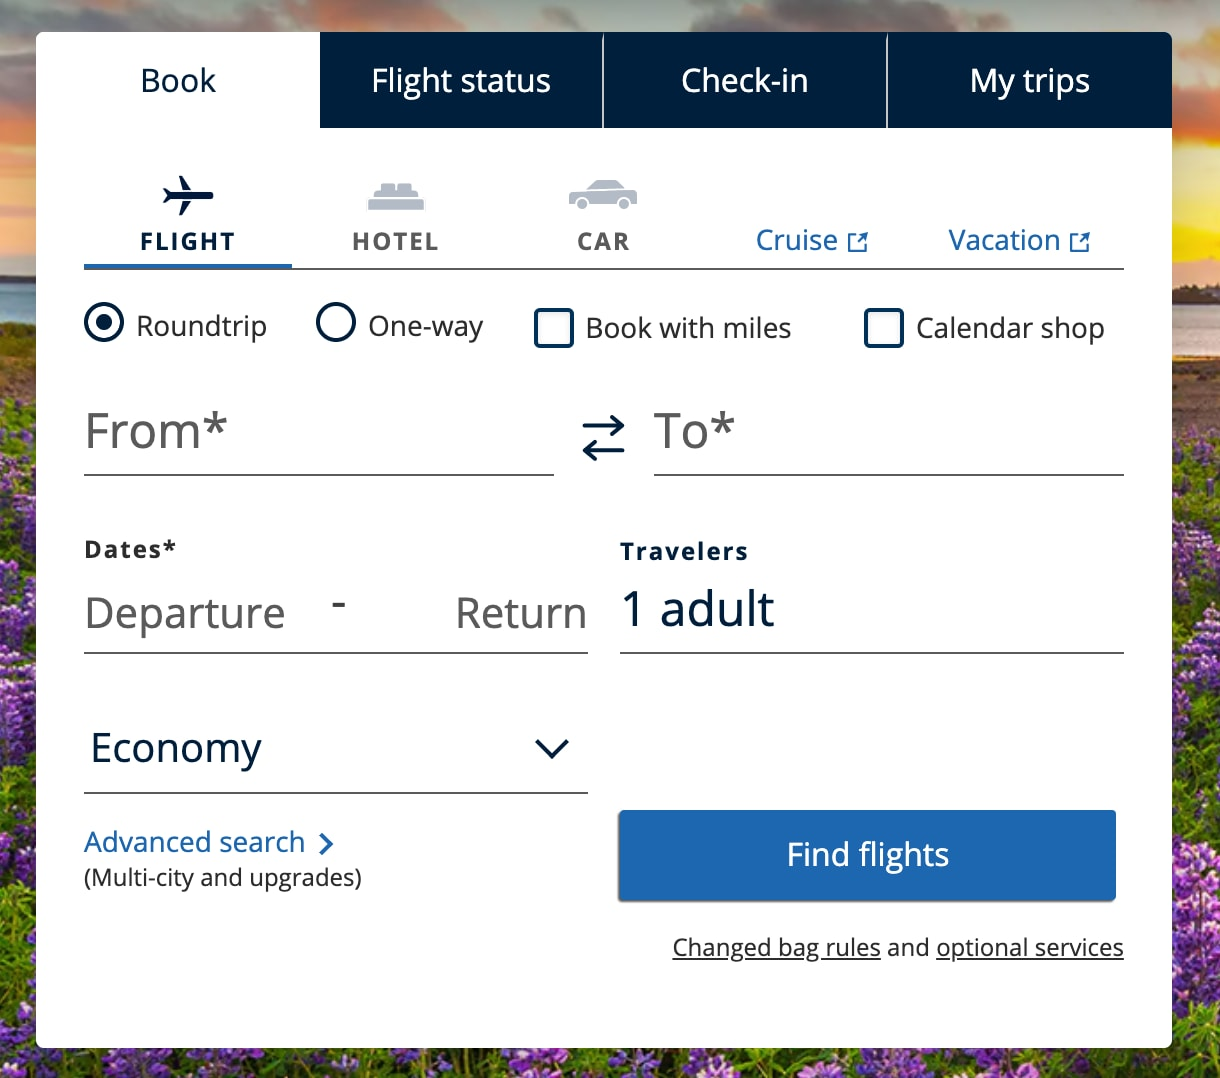 How To Get Upgraded On United Airlines 2020 Valuepenguin,United Airlines Baggage Guidelines